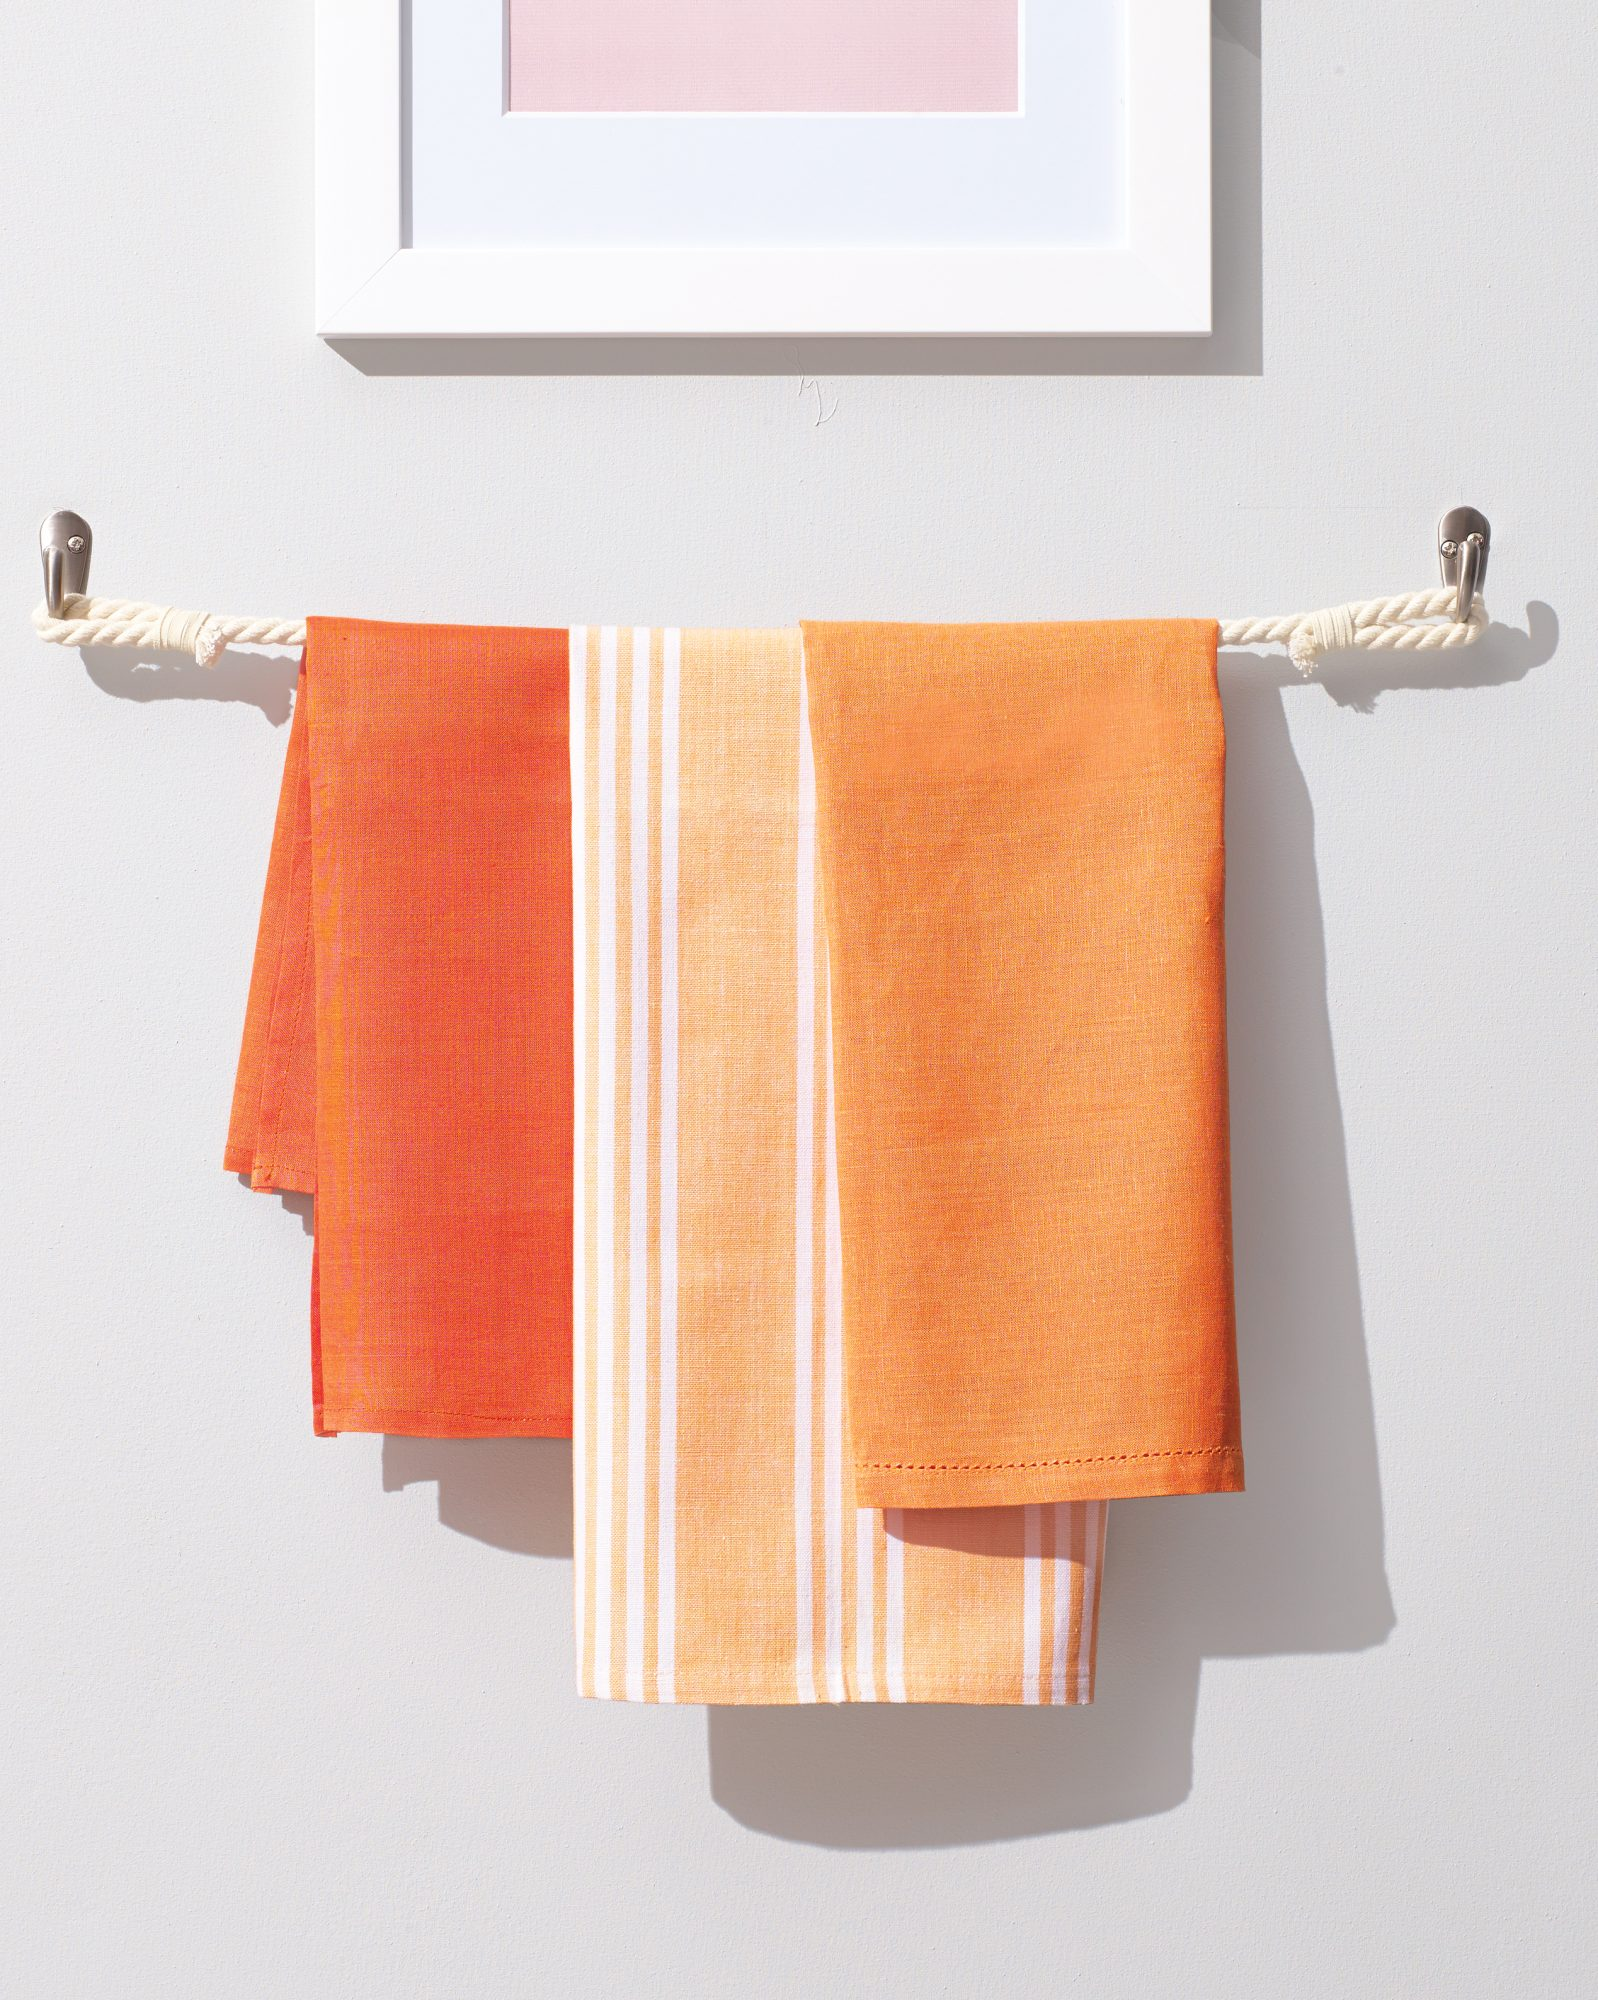 rope towel bar with orange towels